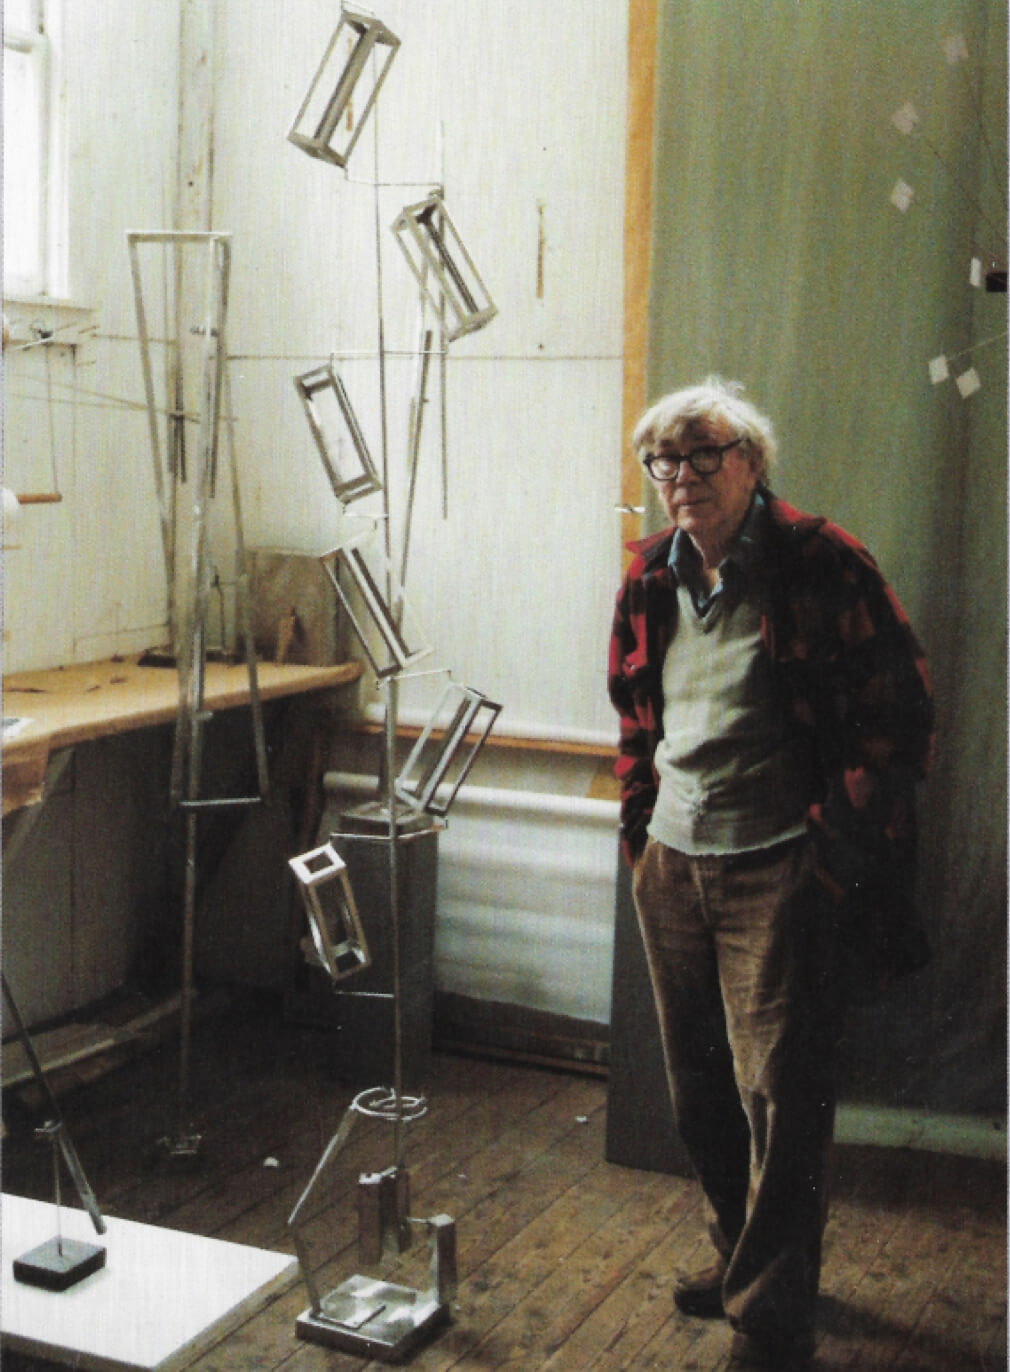 George Rickey with Column of Six Parallelepipeds II (1986), East Chatham, NY,1990